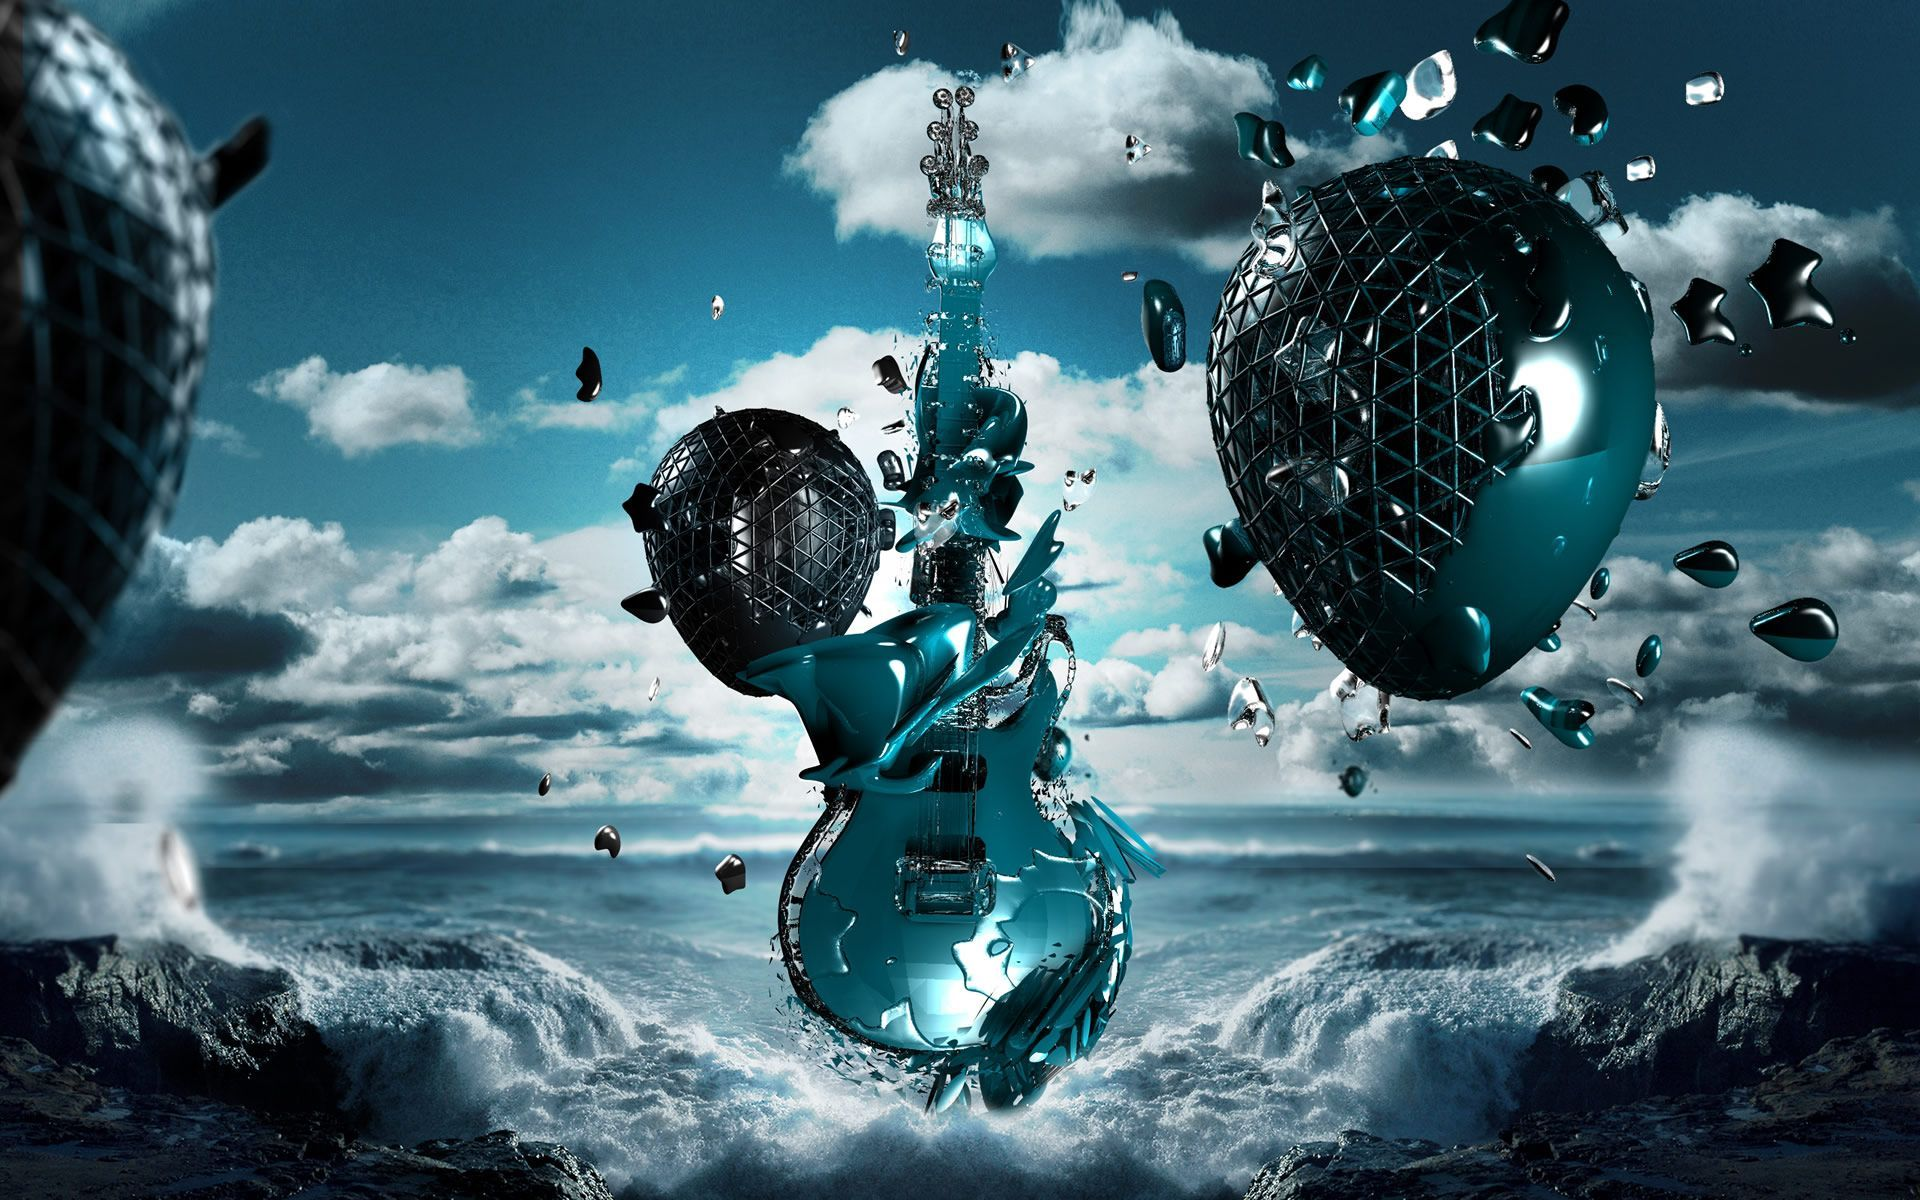 PC Wallpapers 3D Group  81   3D wallpapers add an extra dimension to your desktop background